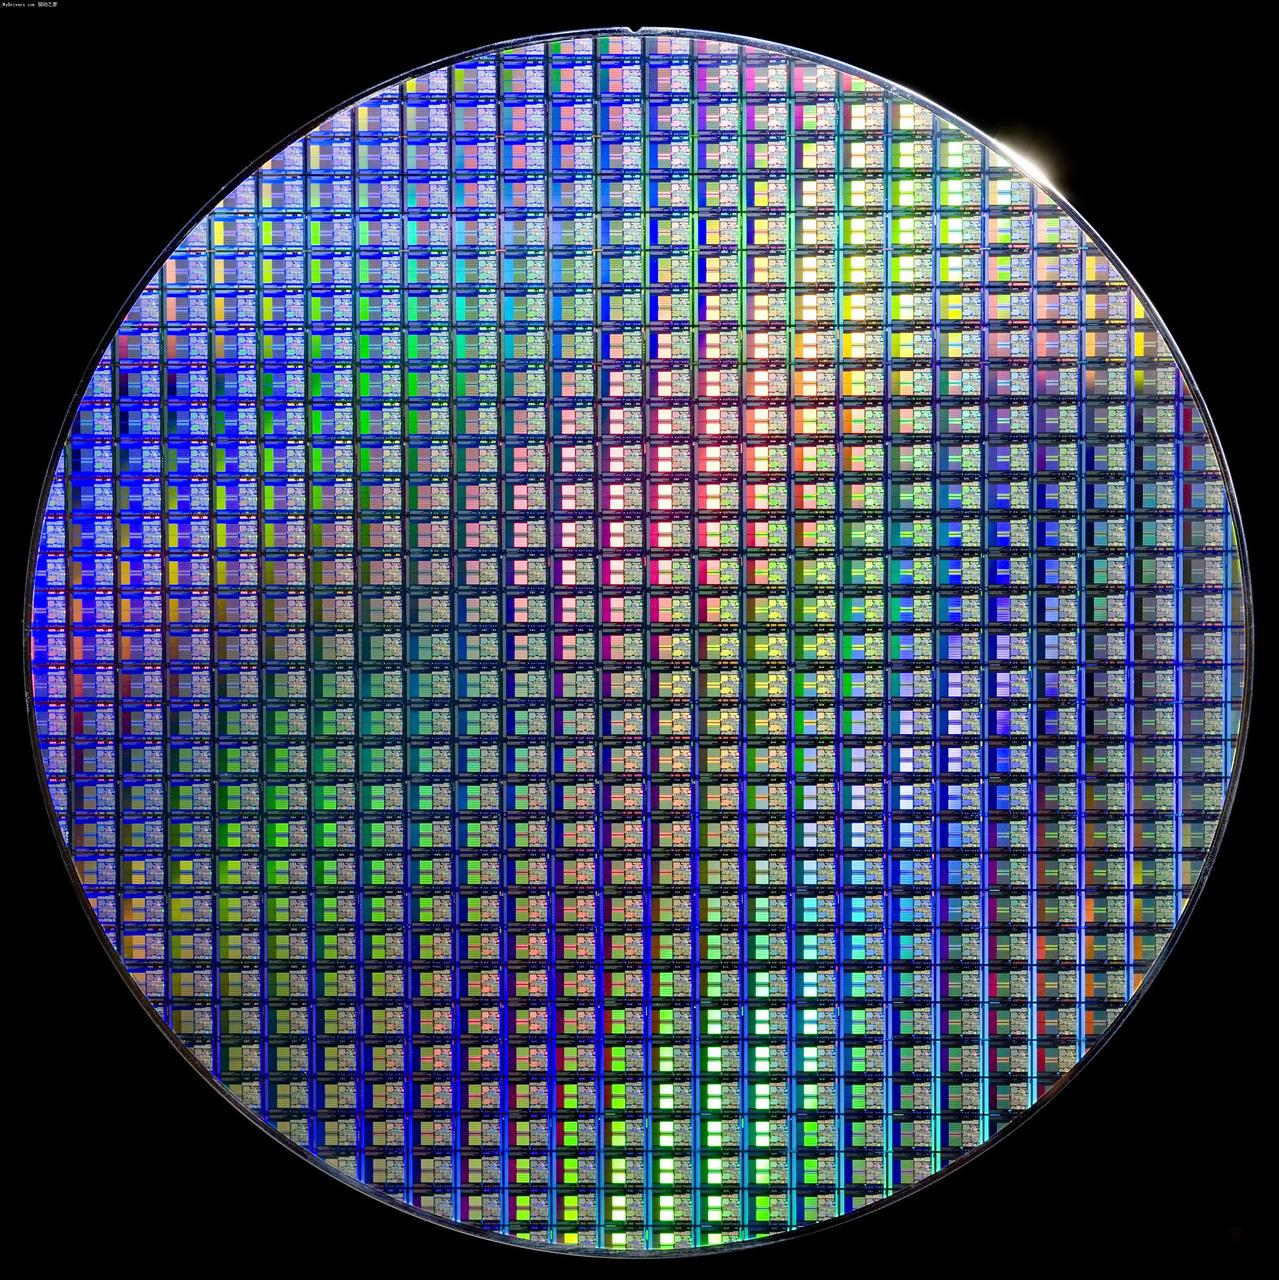 4 6 8 Inch Silicon Wafer Integrated Circuit Uncut Geek Toy Ornament Circuits Crystals 12 Single Crystal Plate Chip Double Side